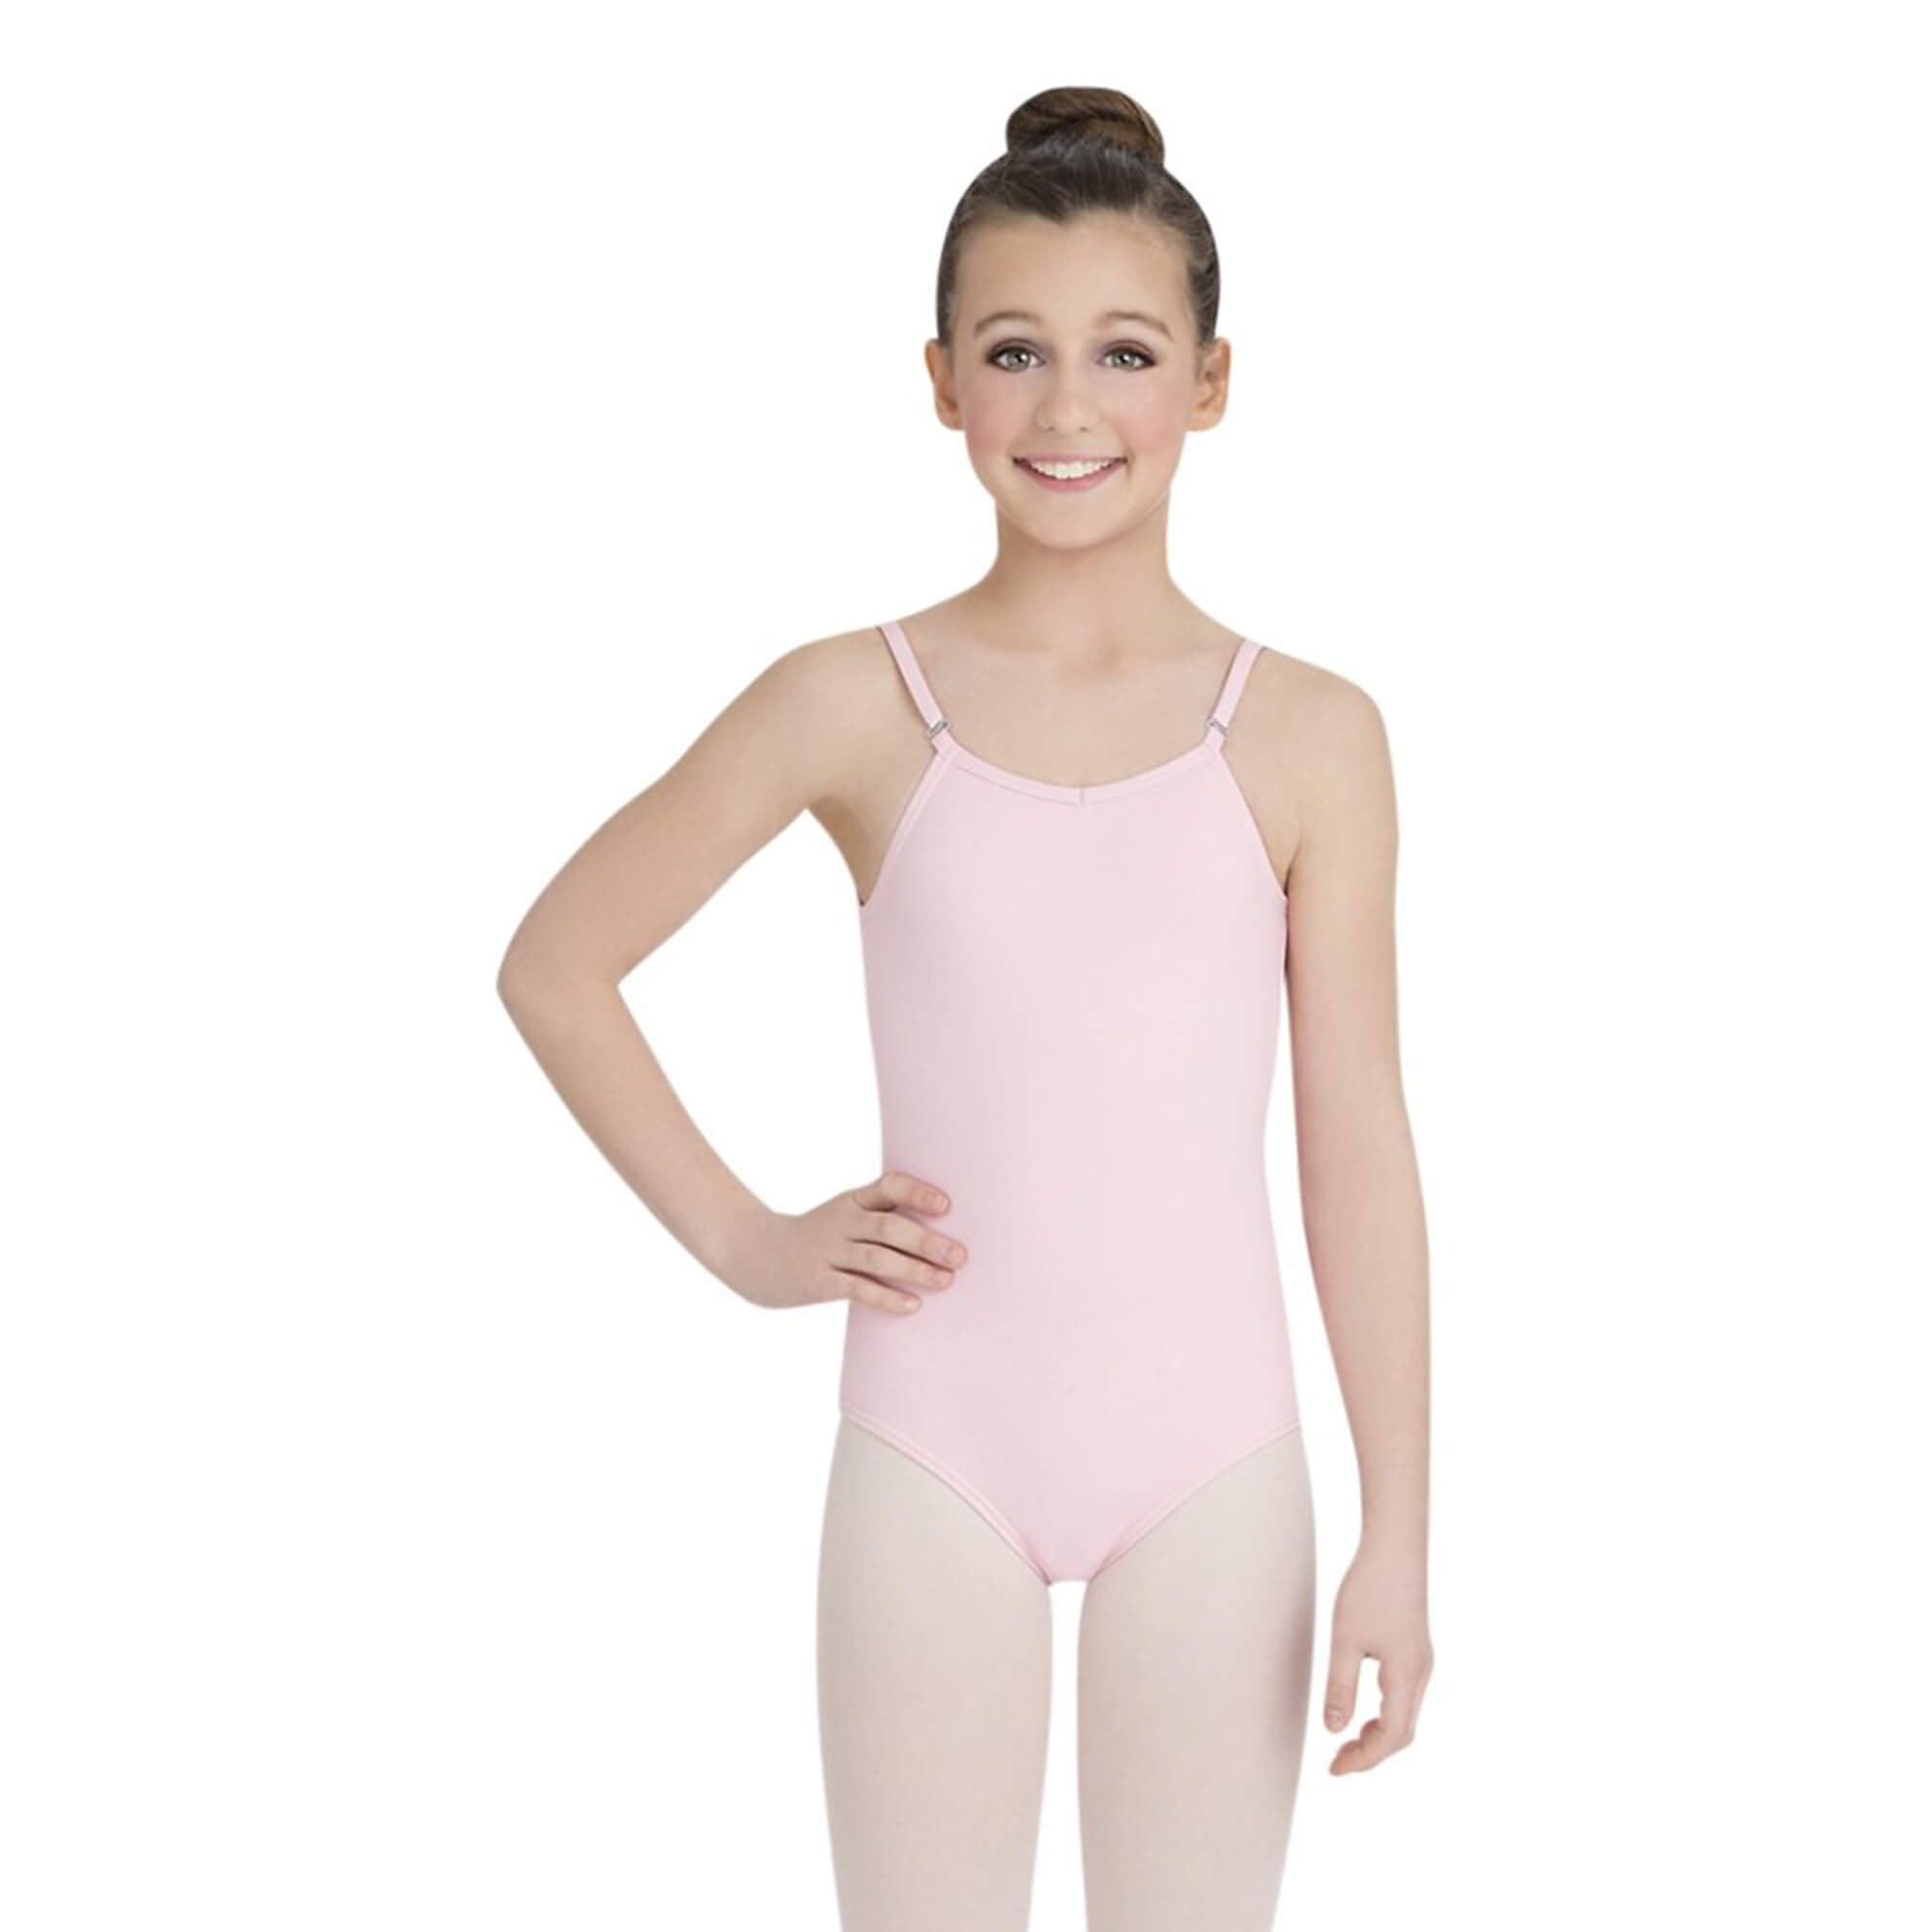 Capezio Girls' Camisole Leotard With Adjustable Straps